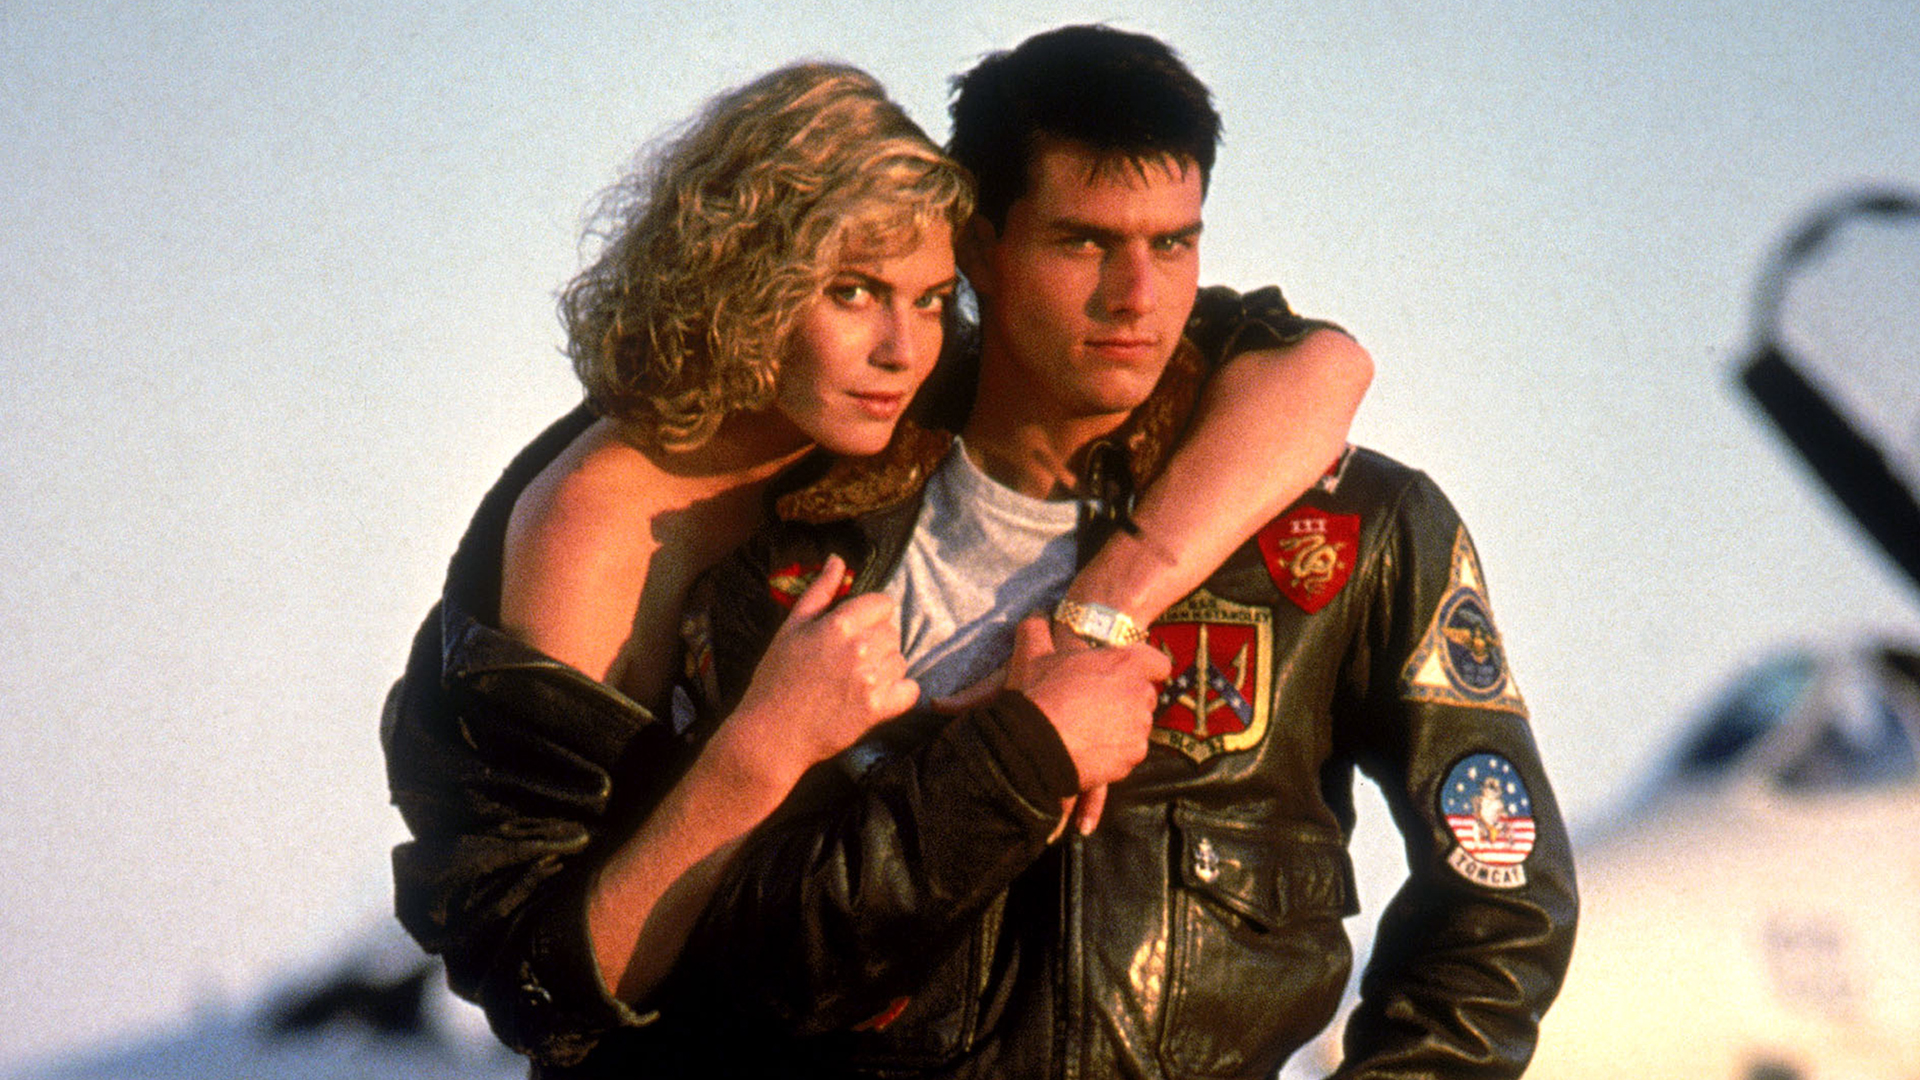 'Top Gun' Turns 30: 8 Facts About The Hit Tom Cruise Movie